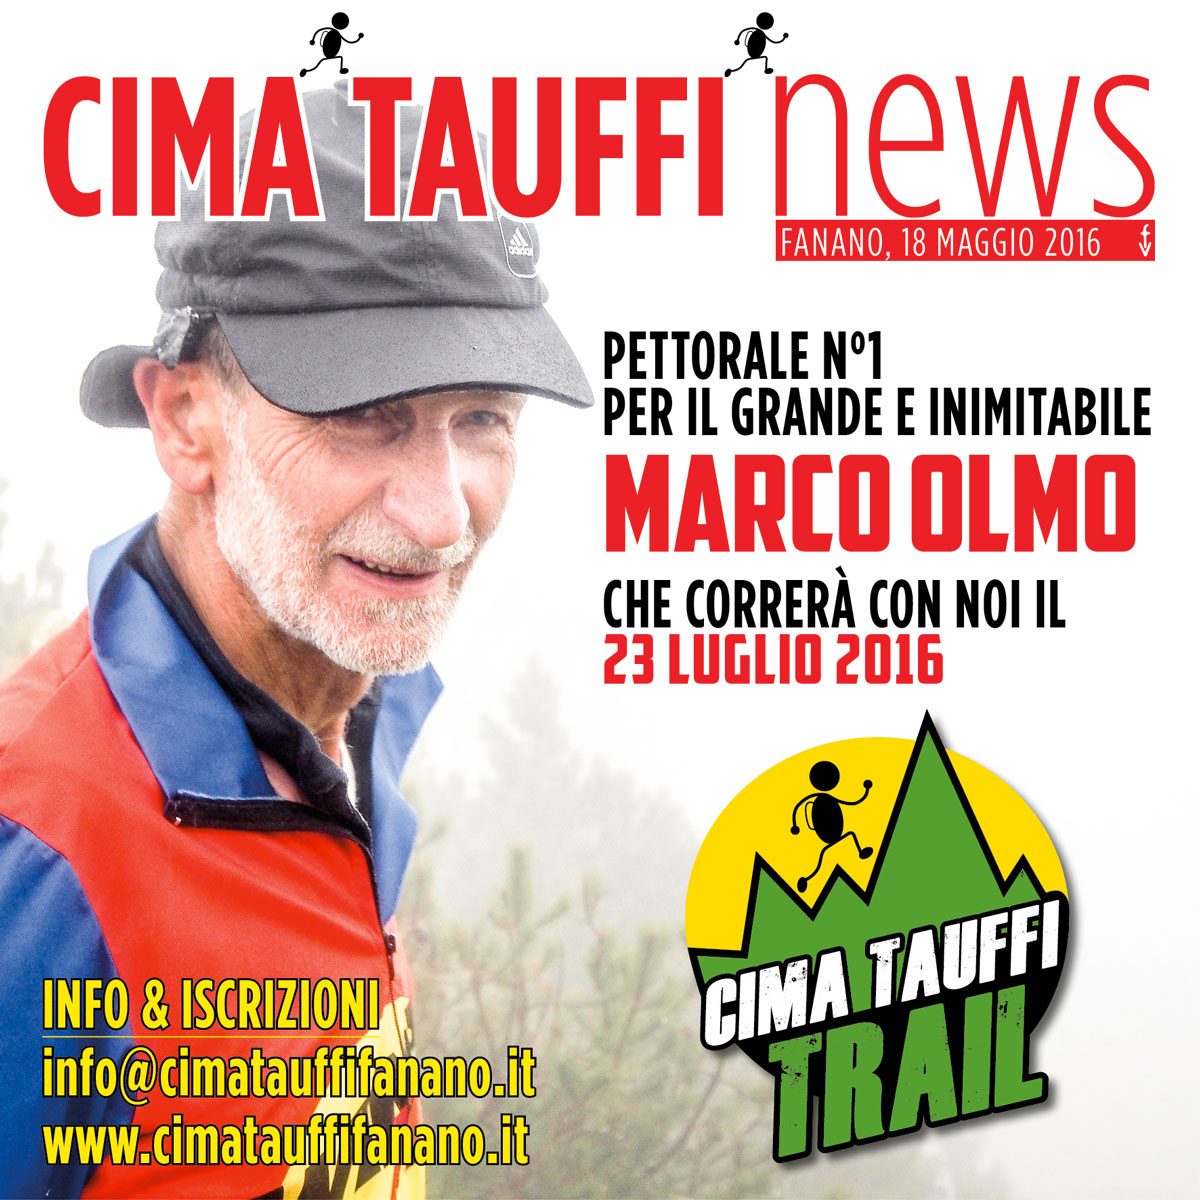 5 C TAUFFI TRAIL news marco olmo